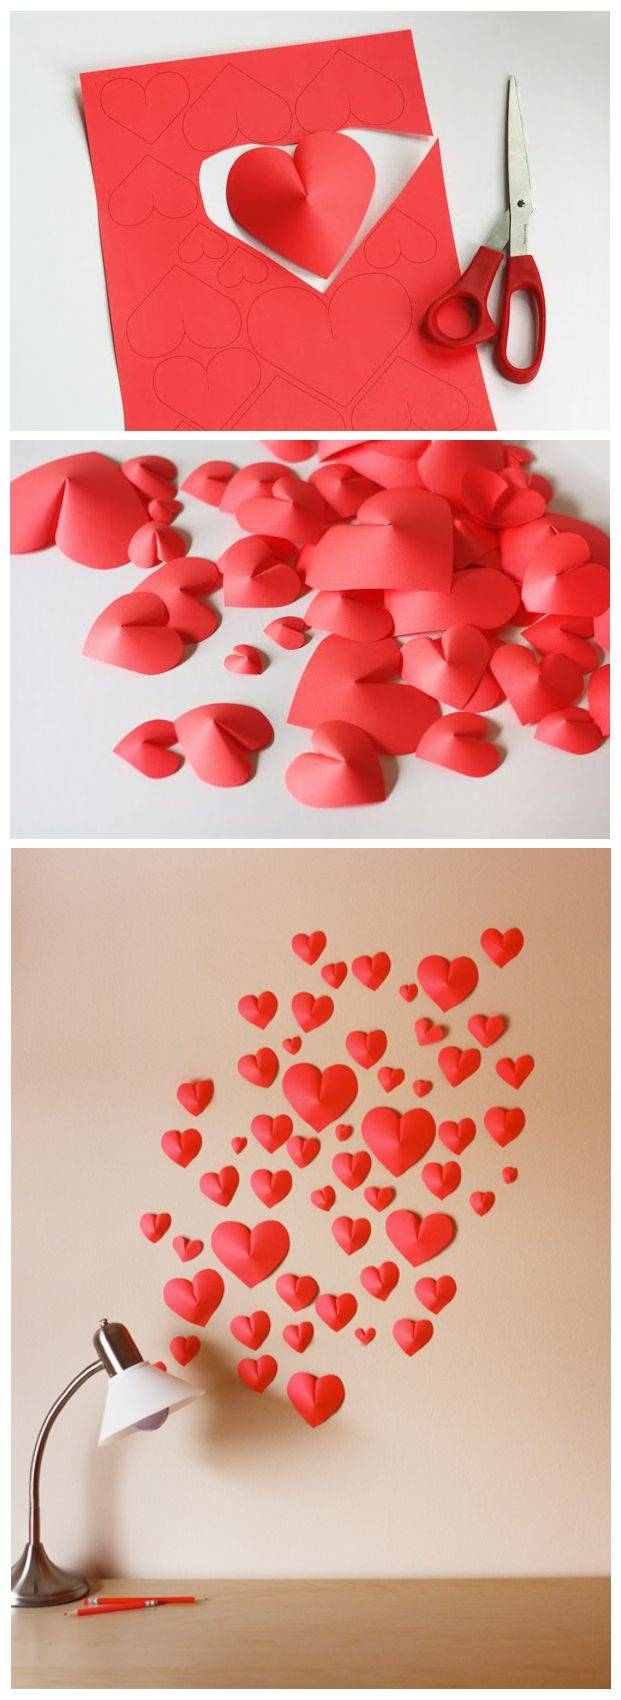 25+ Unique Origami Wall Art Ideas On Pinterest | Paper Wall Decor Intended For Recent Diy 3D Paper Wall Art (View 4 of 20)